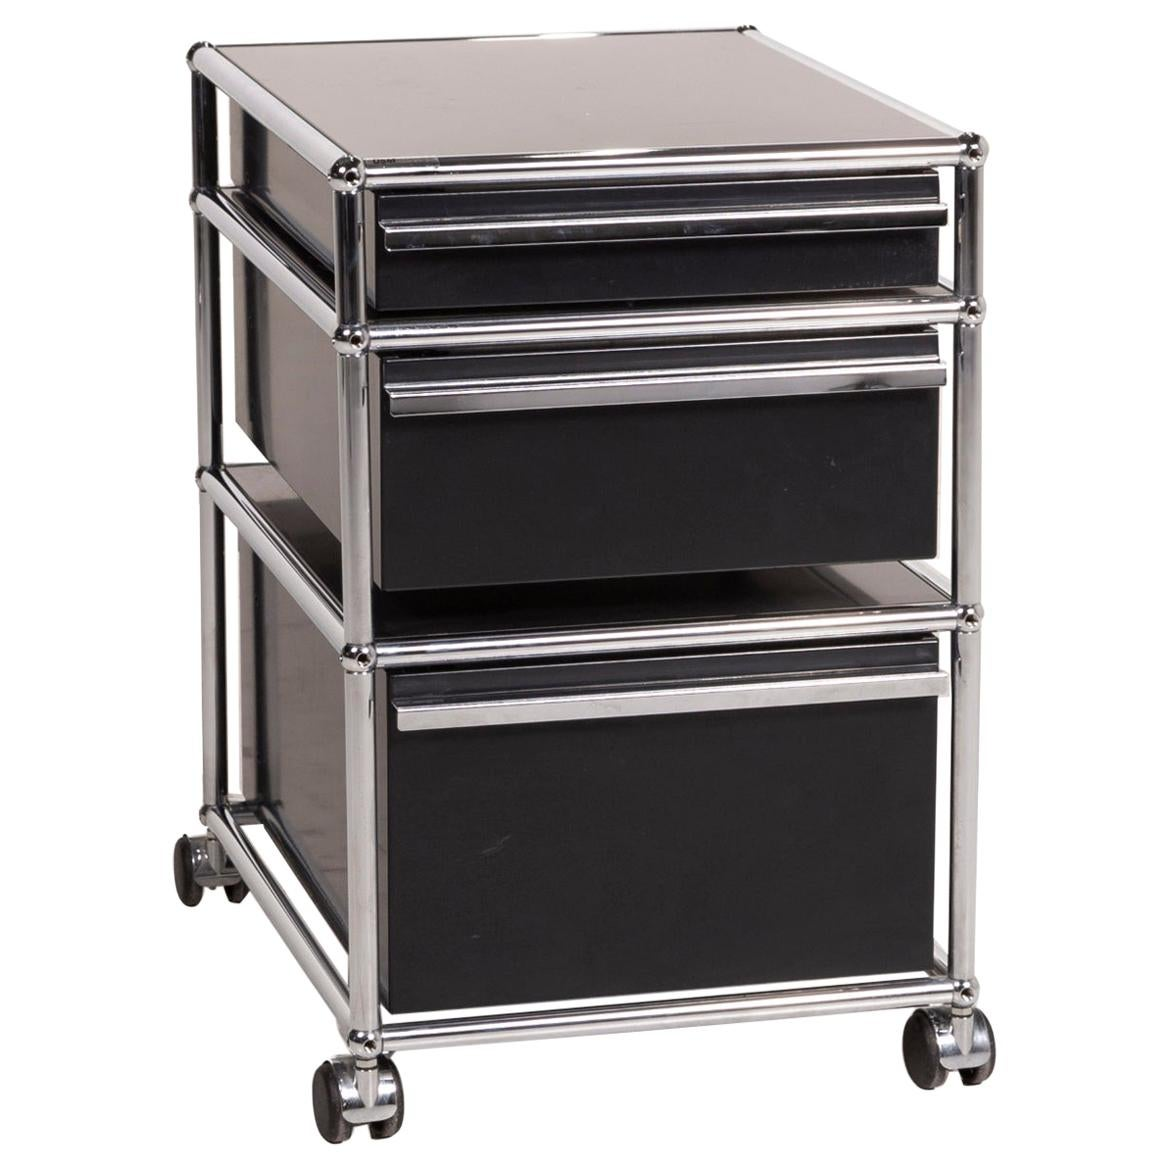 USM Haller Metal Sideboard Black Roll Container Rolls Drawer Compartment Chrome